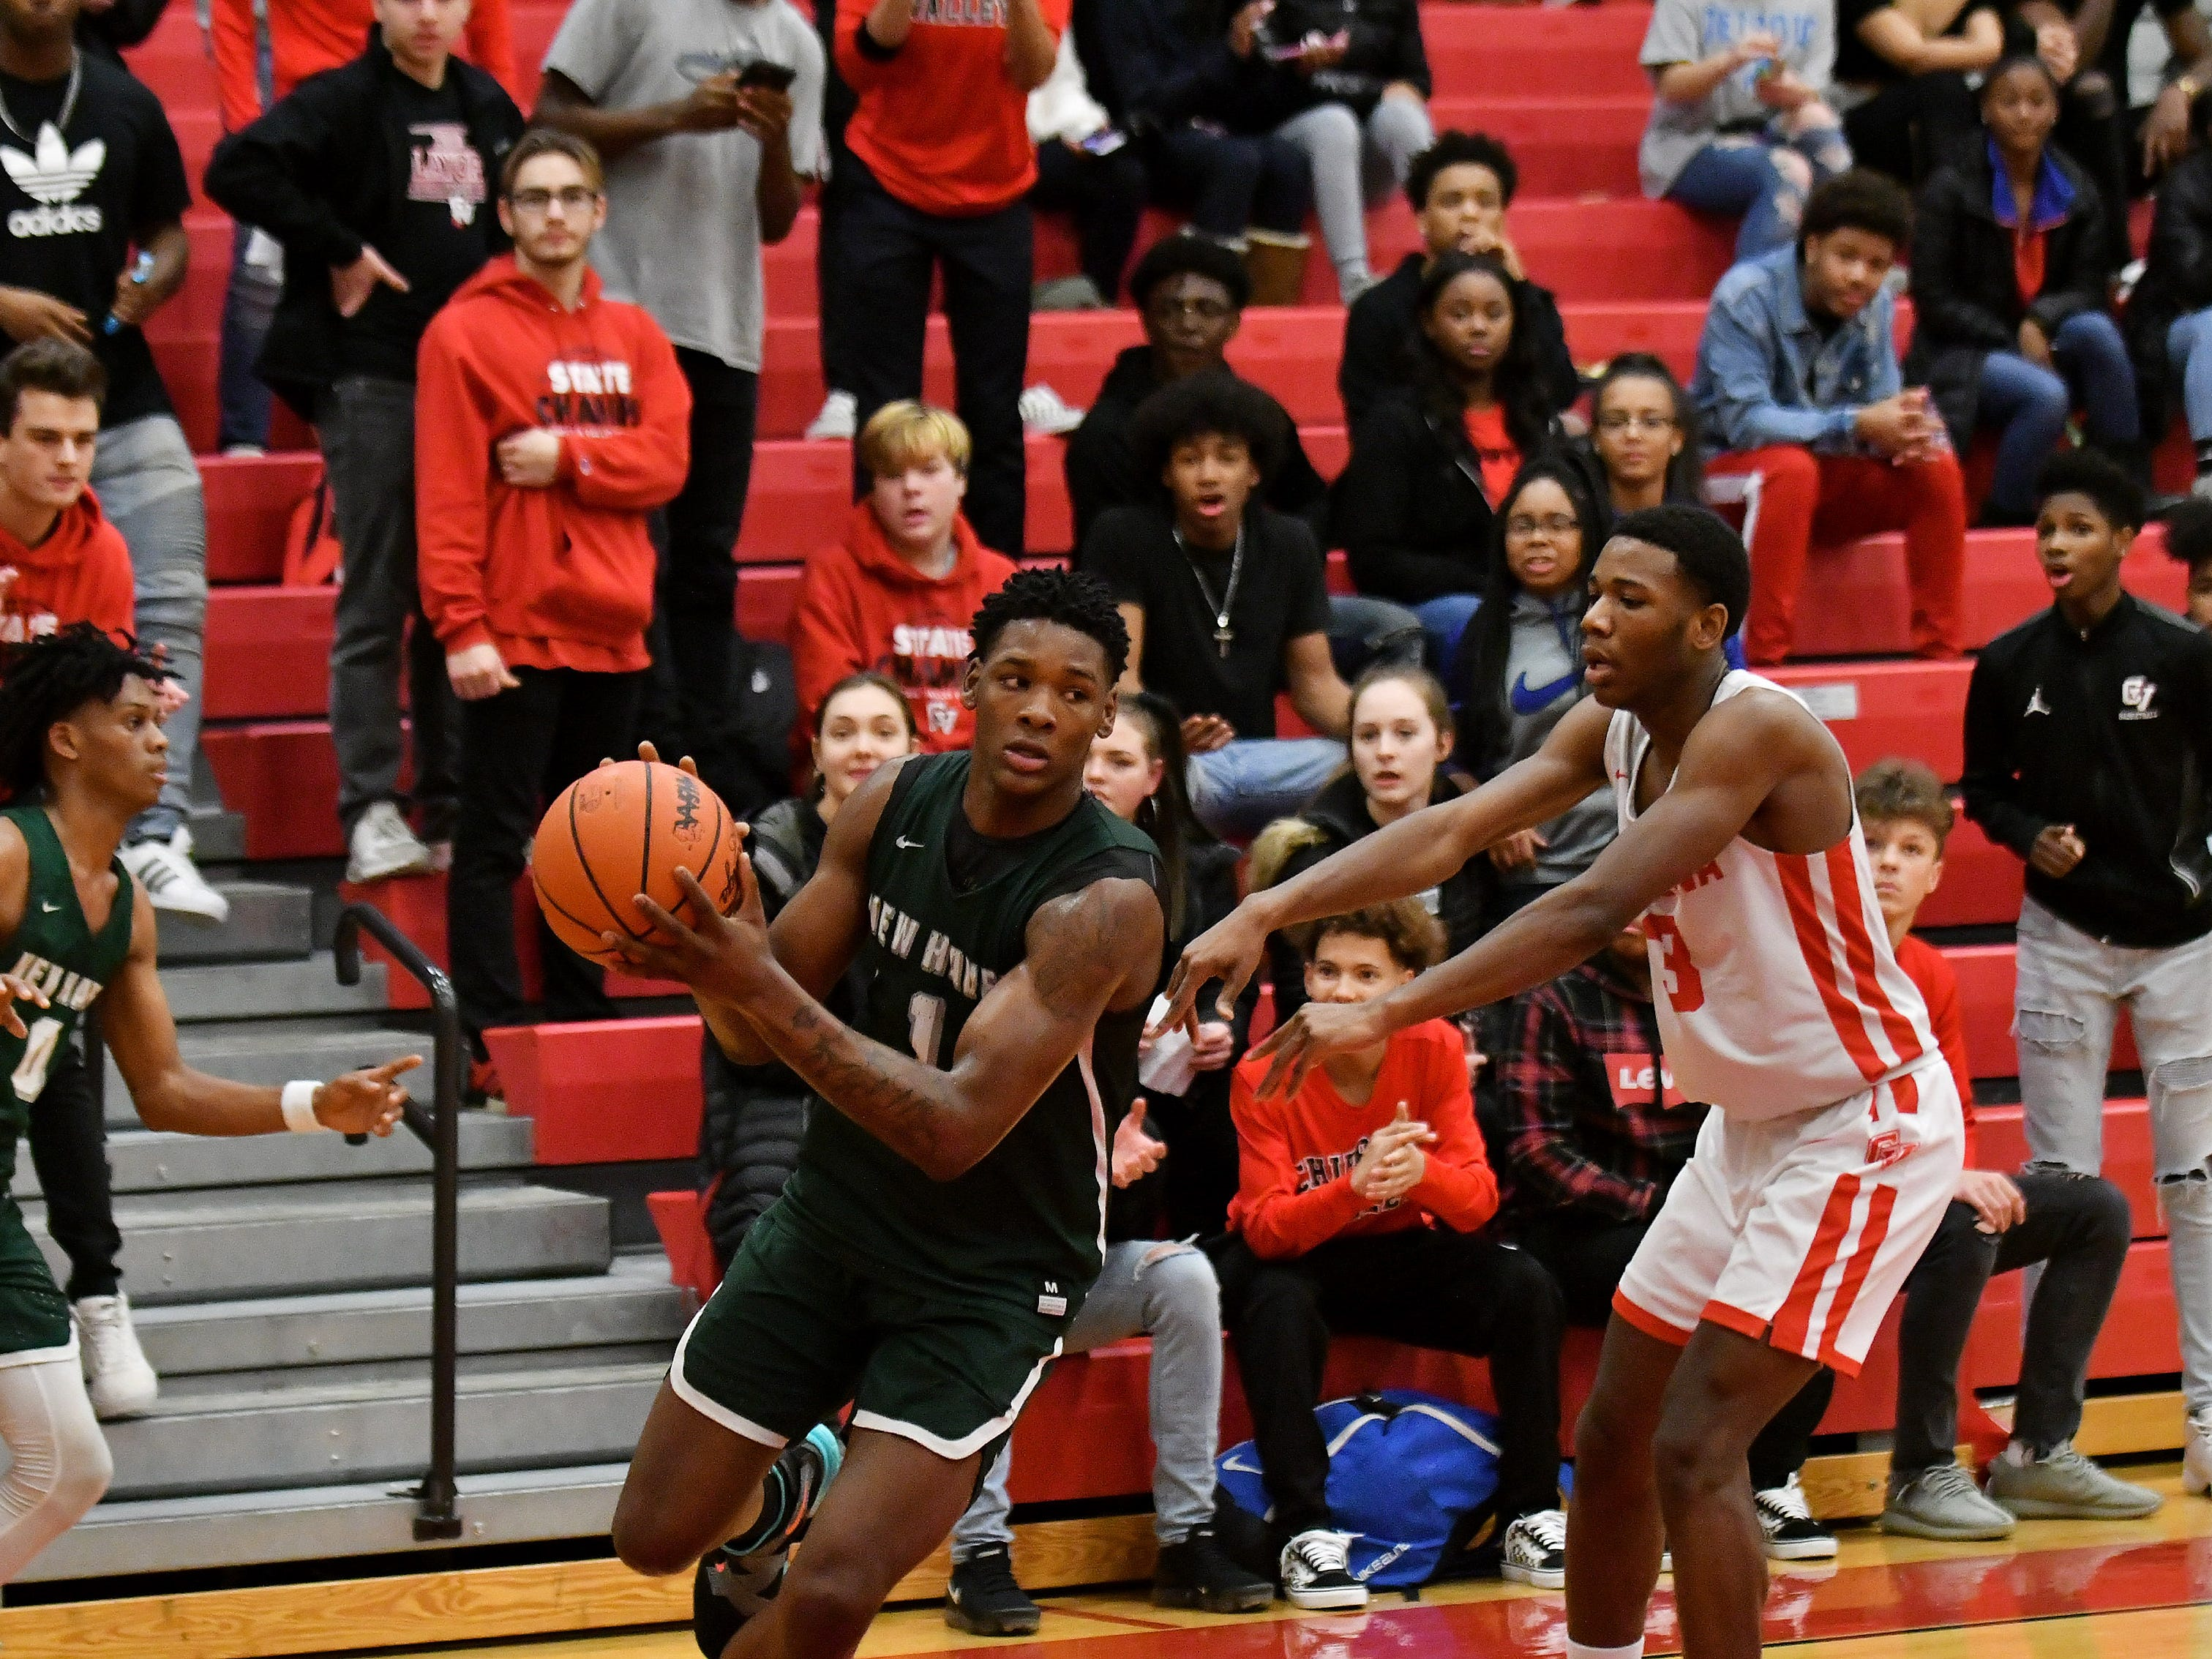 The Chippewa Valley student section watches closely while New Haven's Romeo Weems (1) is guarded by Chippewa Valley's Corey McCray (3) in the second half.